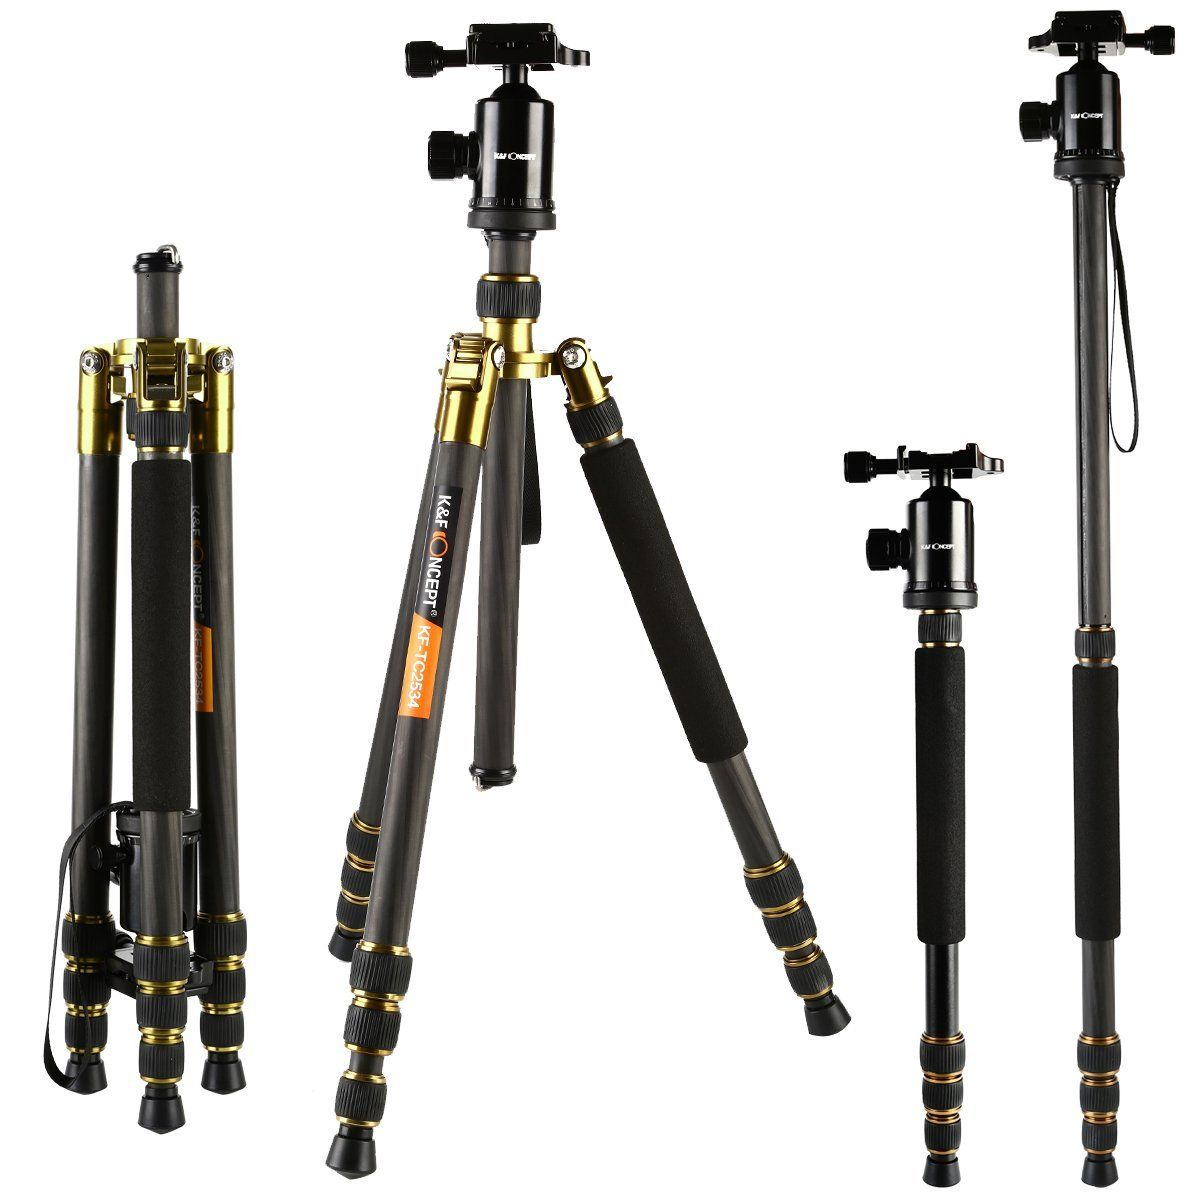 "Tripods Carbon Fiber, K&F Concept TC2534 Lightweight Portable Camera Tripod Monopod kit 66""/168cm Professional Travel Tripod for DSLR Cameras Canon Nikon Simga Tamron Sony ""New Year New You Deals"""